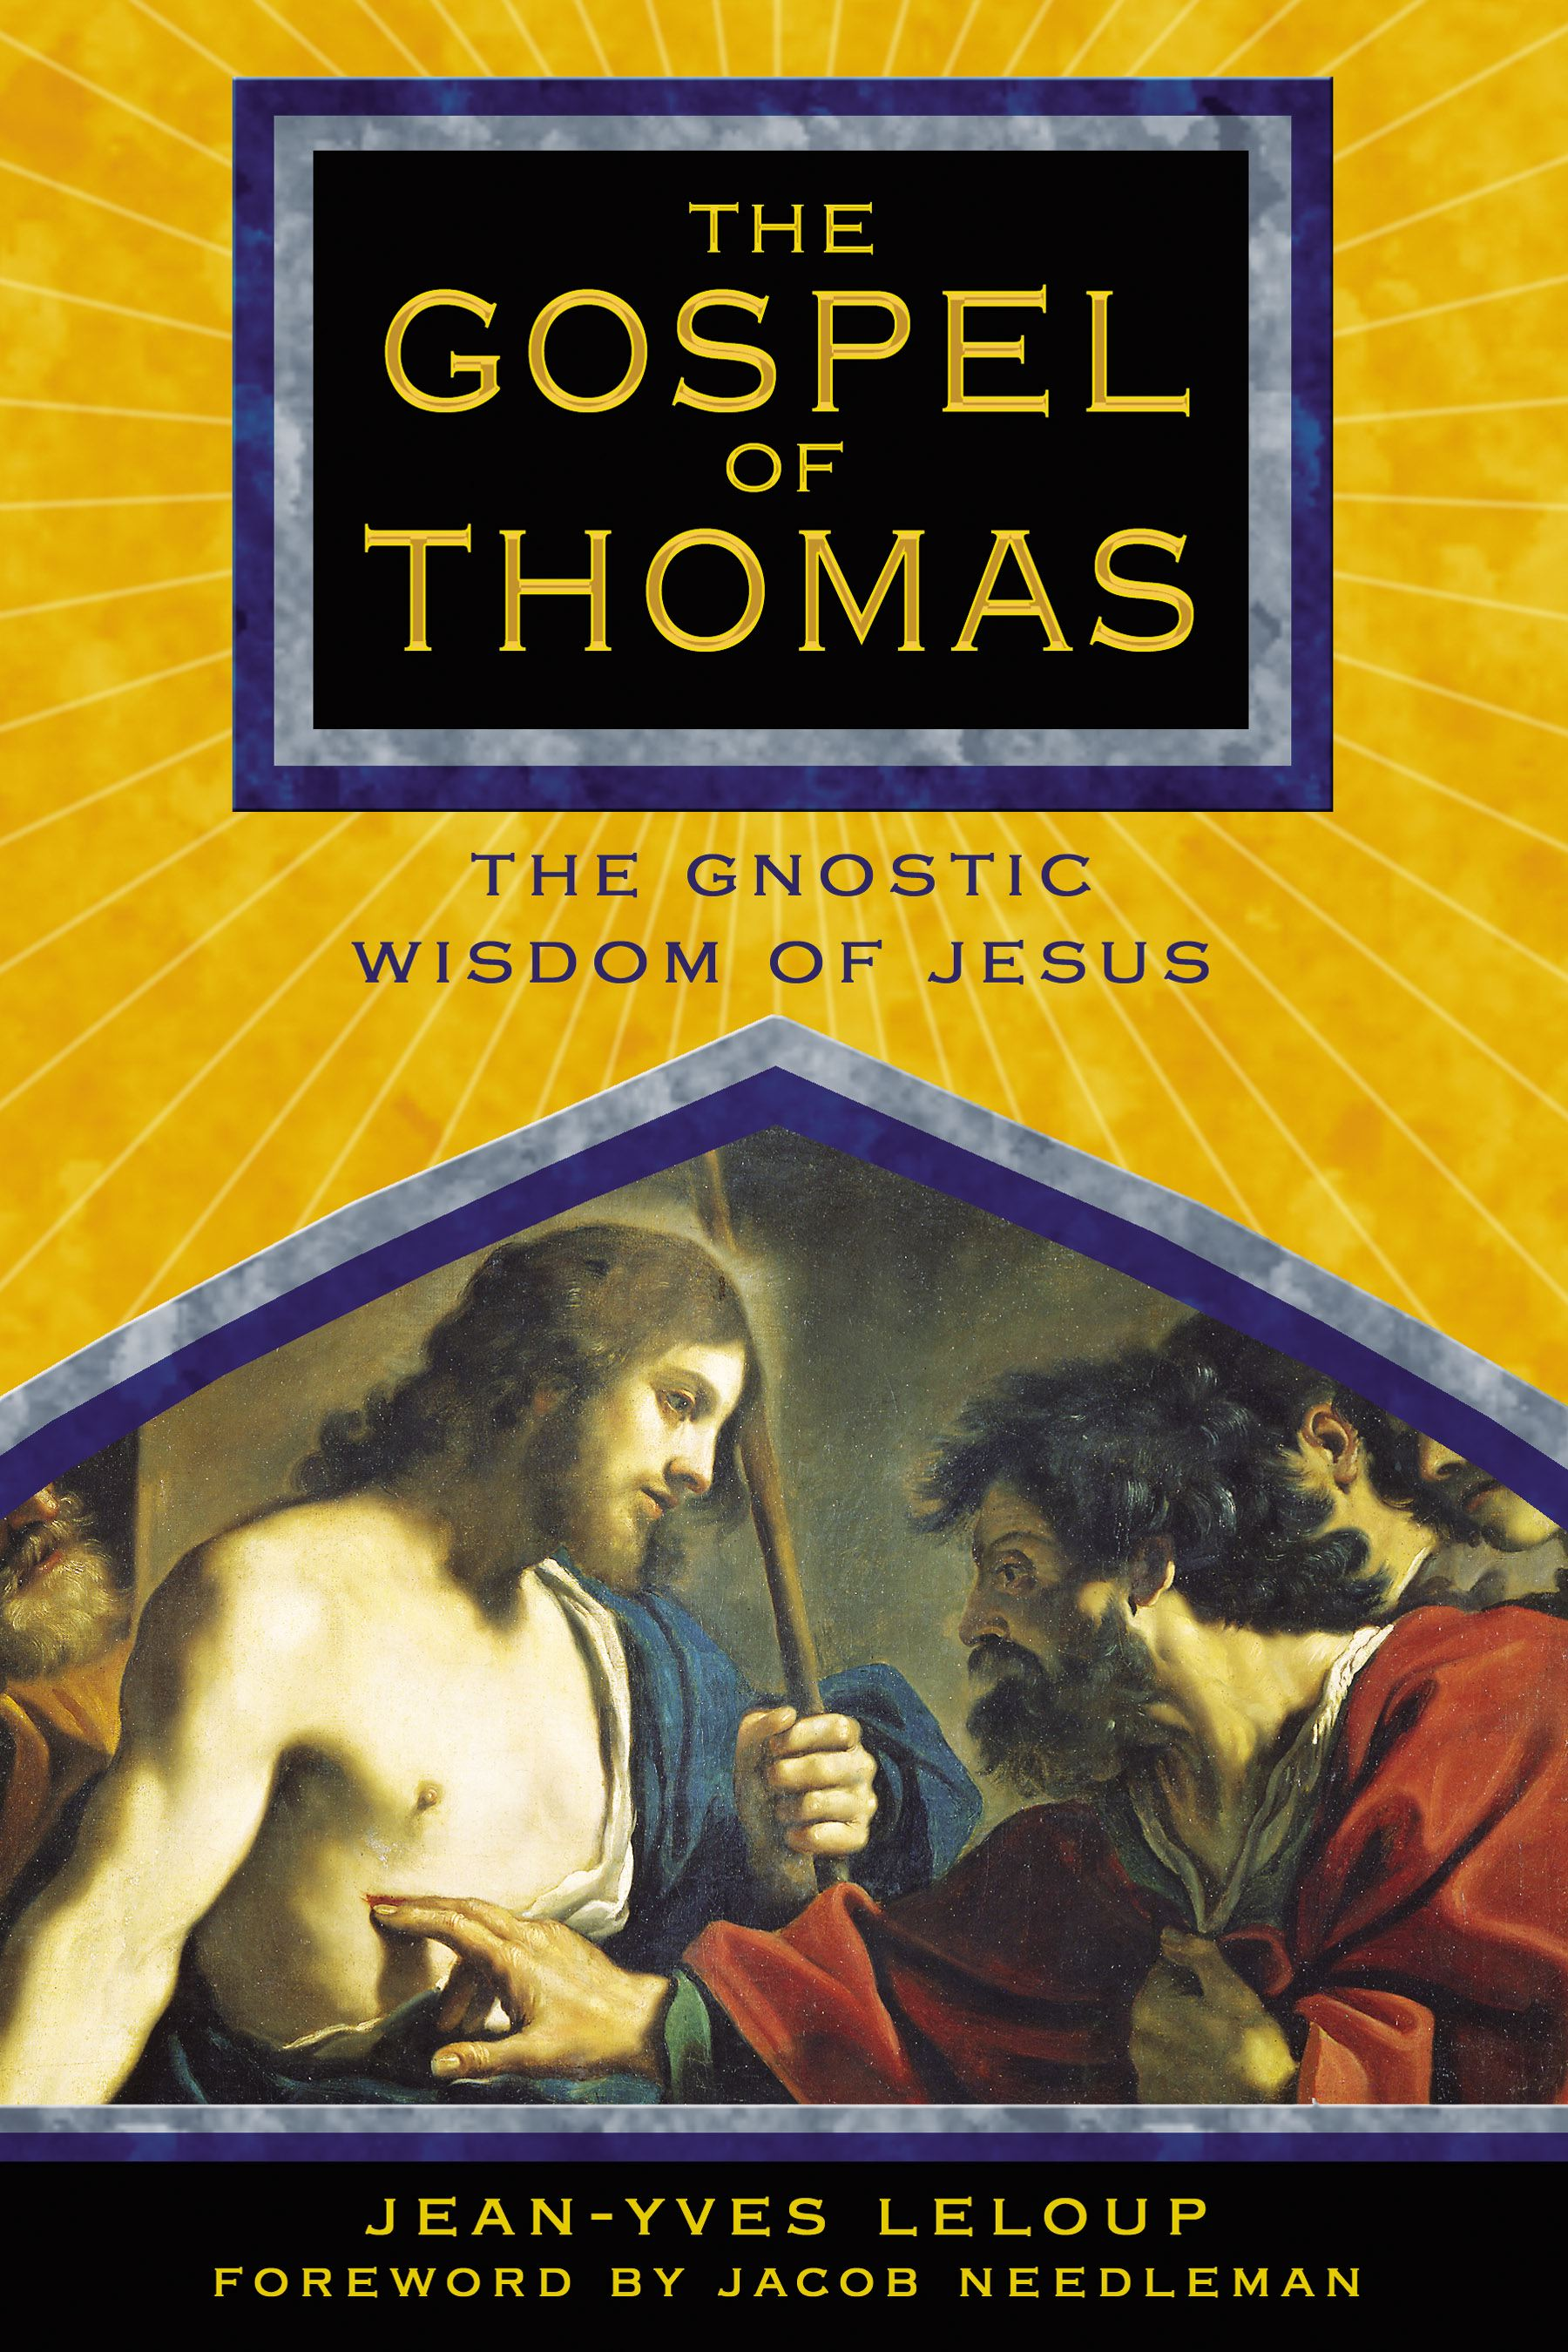 The-gospel-of-thomas-9781594770463_hr